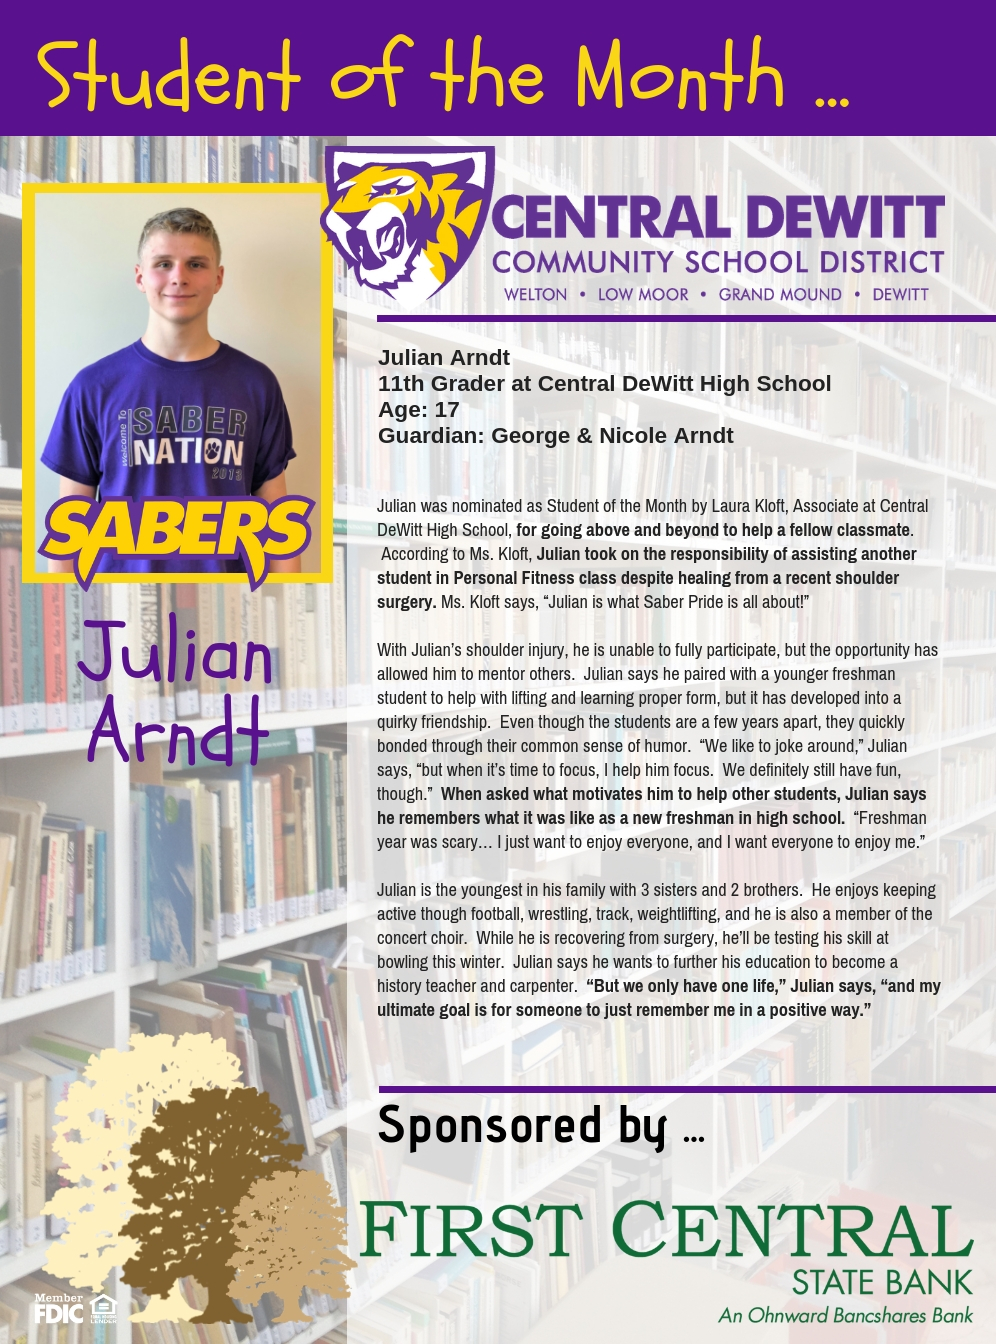 Student of the Month, Julian Arndt